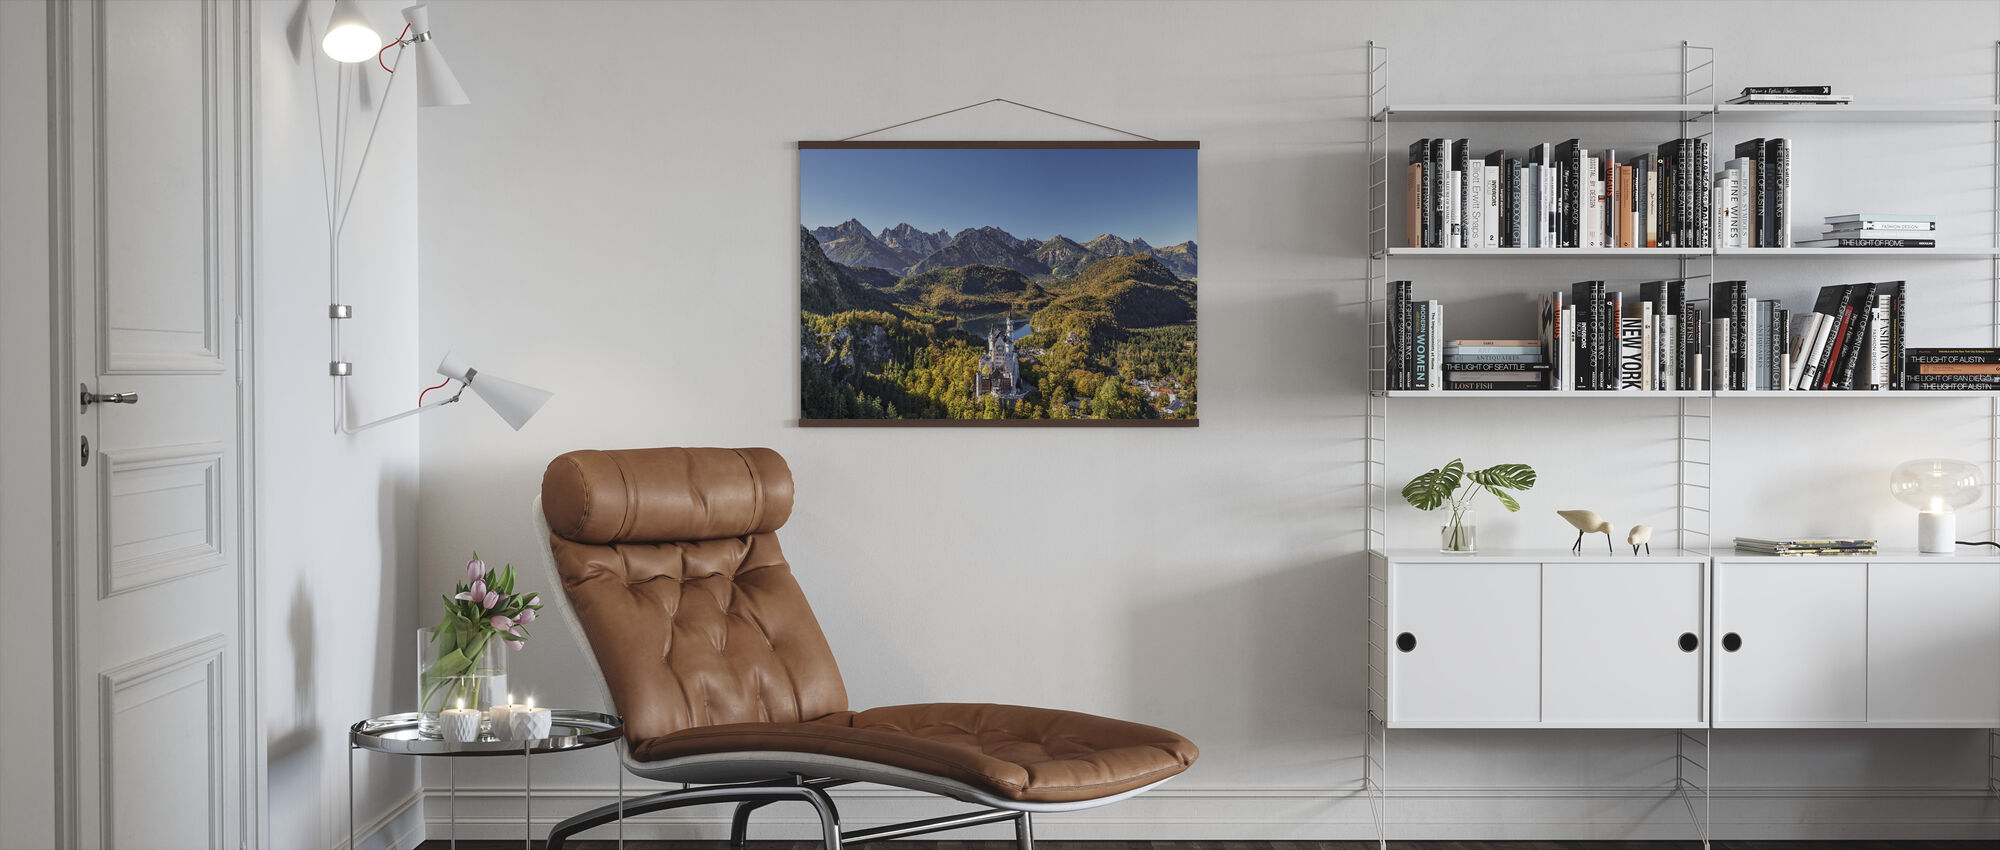 Castle in the Mountains - Poster - Living Room